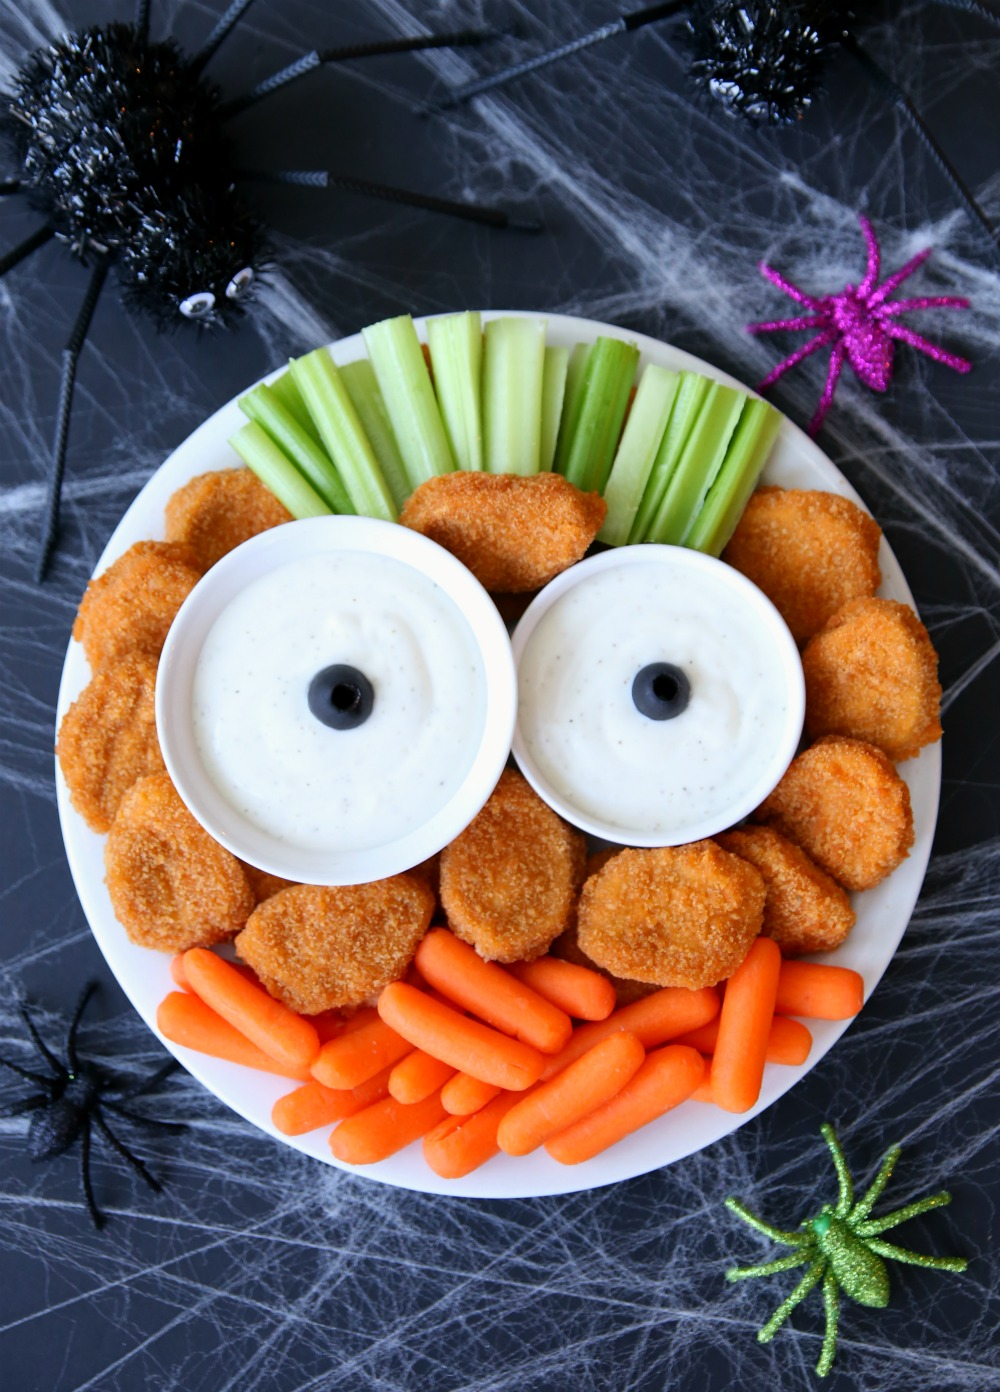 Monster Chicken Nuggets Platter Tray - A fun Halloween appetizer tray!